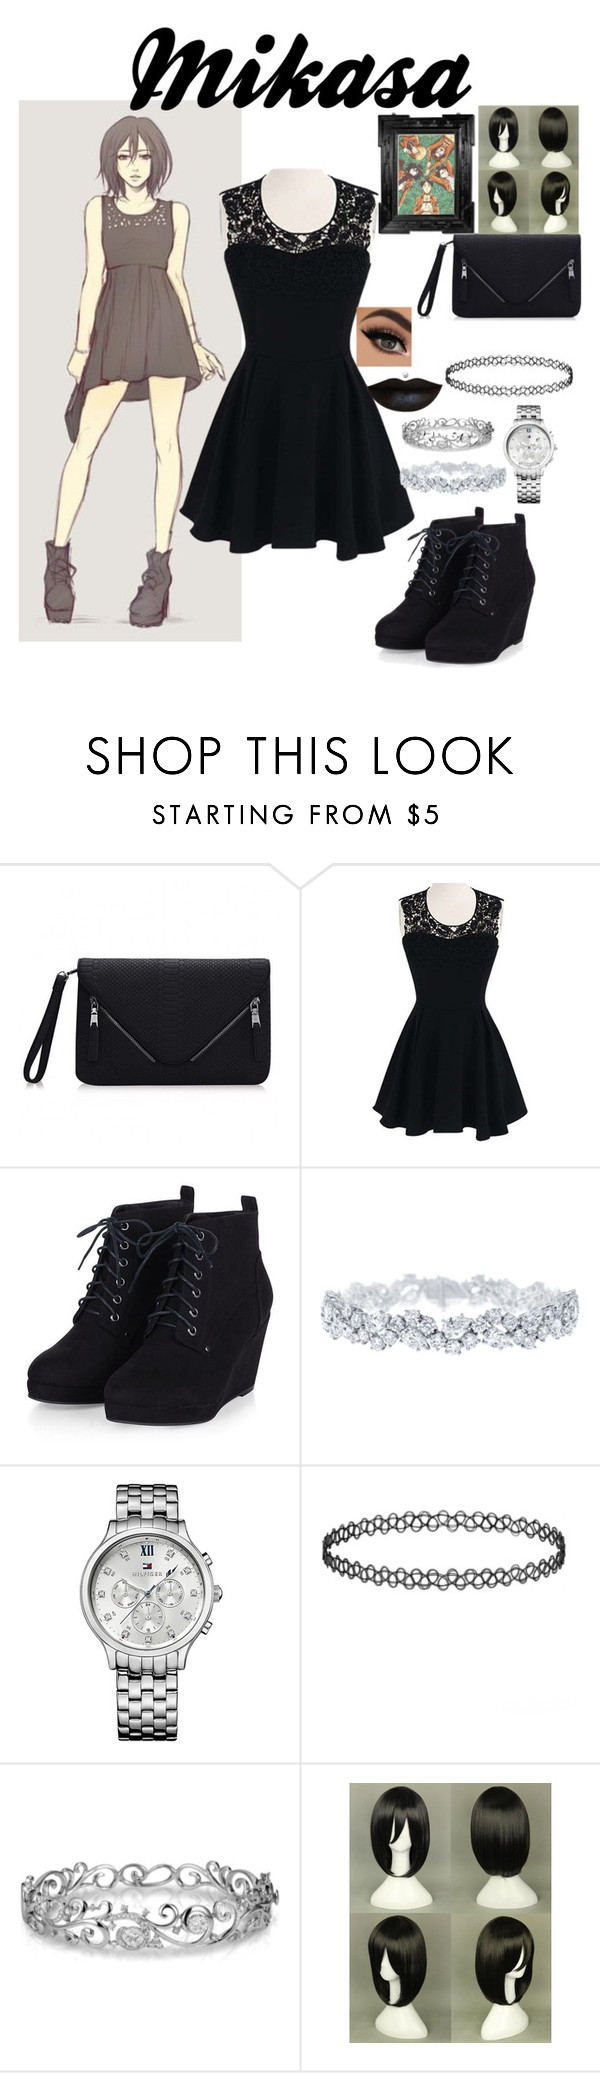 """""""Mikasa"""" by women-of-justice ❤ liked on Polyvore featuring Mikasa, Harry Winston, Tommy Hilfiger and Effy Jewelry"""